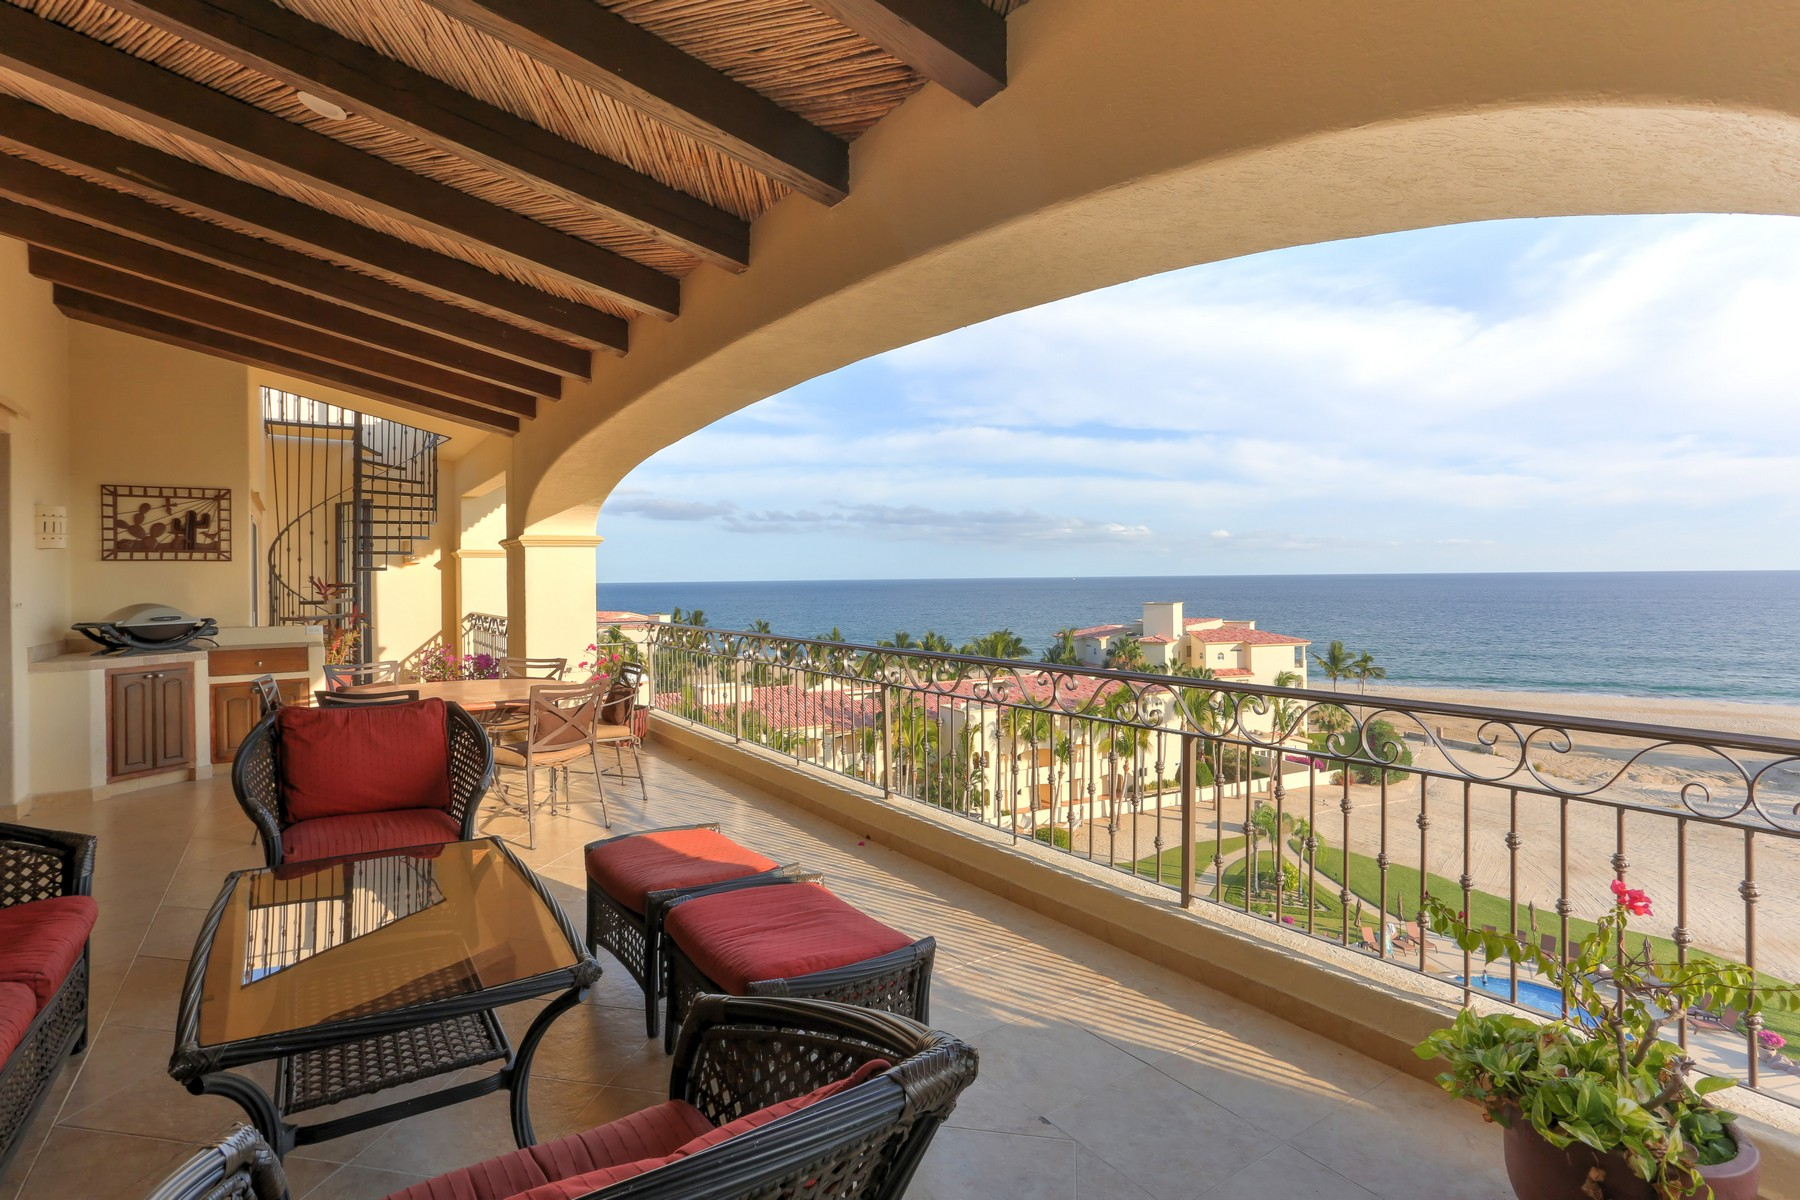 Apartment for Sale at Penthouse 3602 Blvd Paseo San José Zona Hotelera Penthouse 3602 San Jose Del Cabo, 23400 Mexico